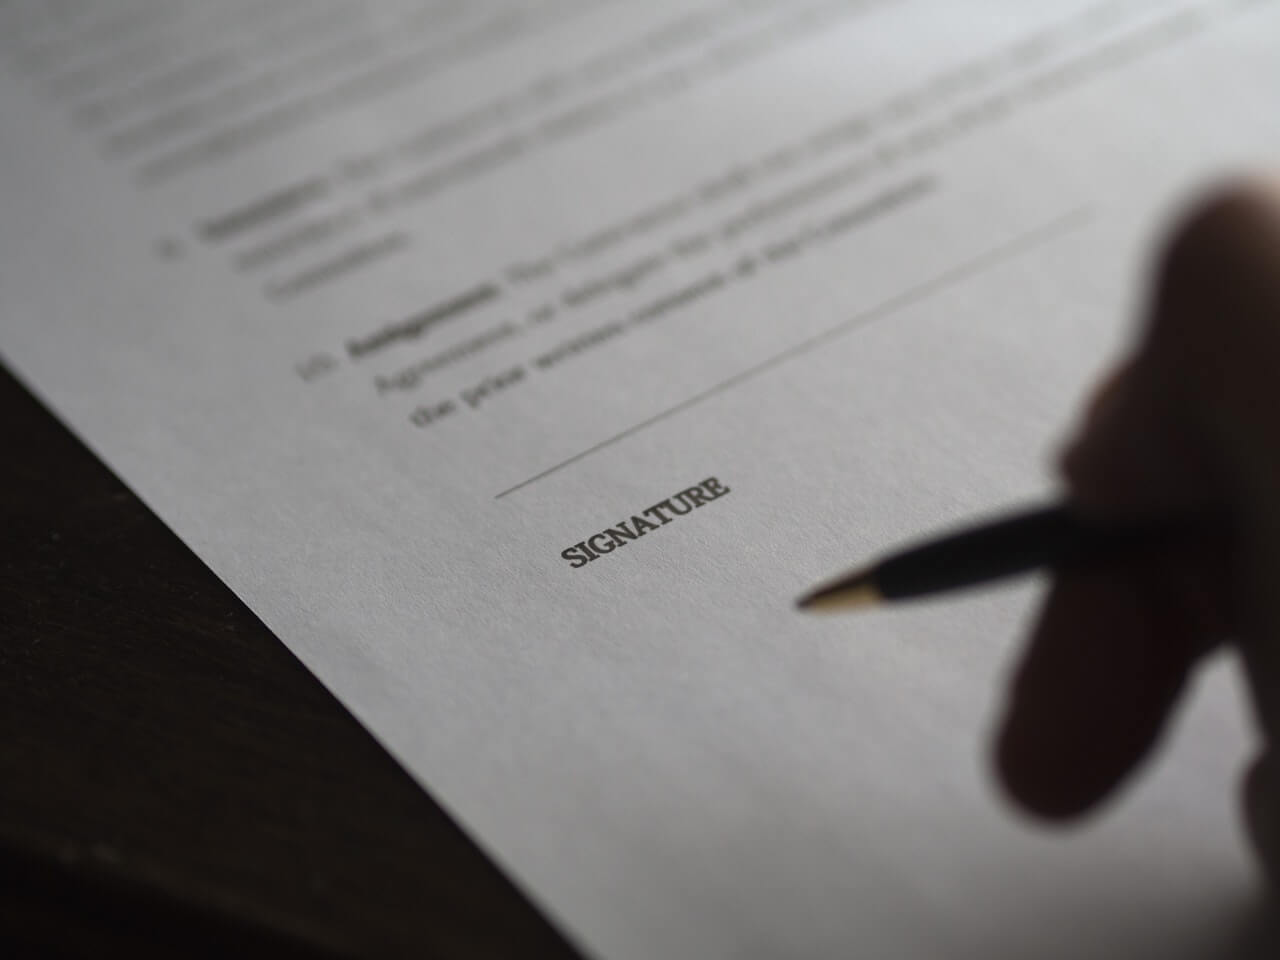 A silhoutted hand holding a pen, hovering above a contract.